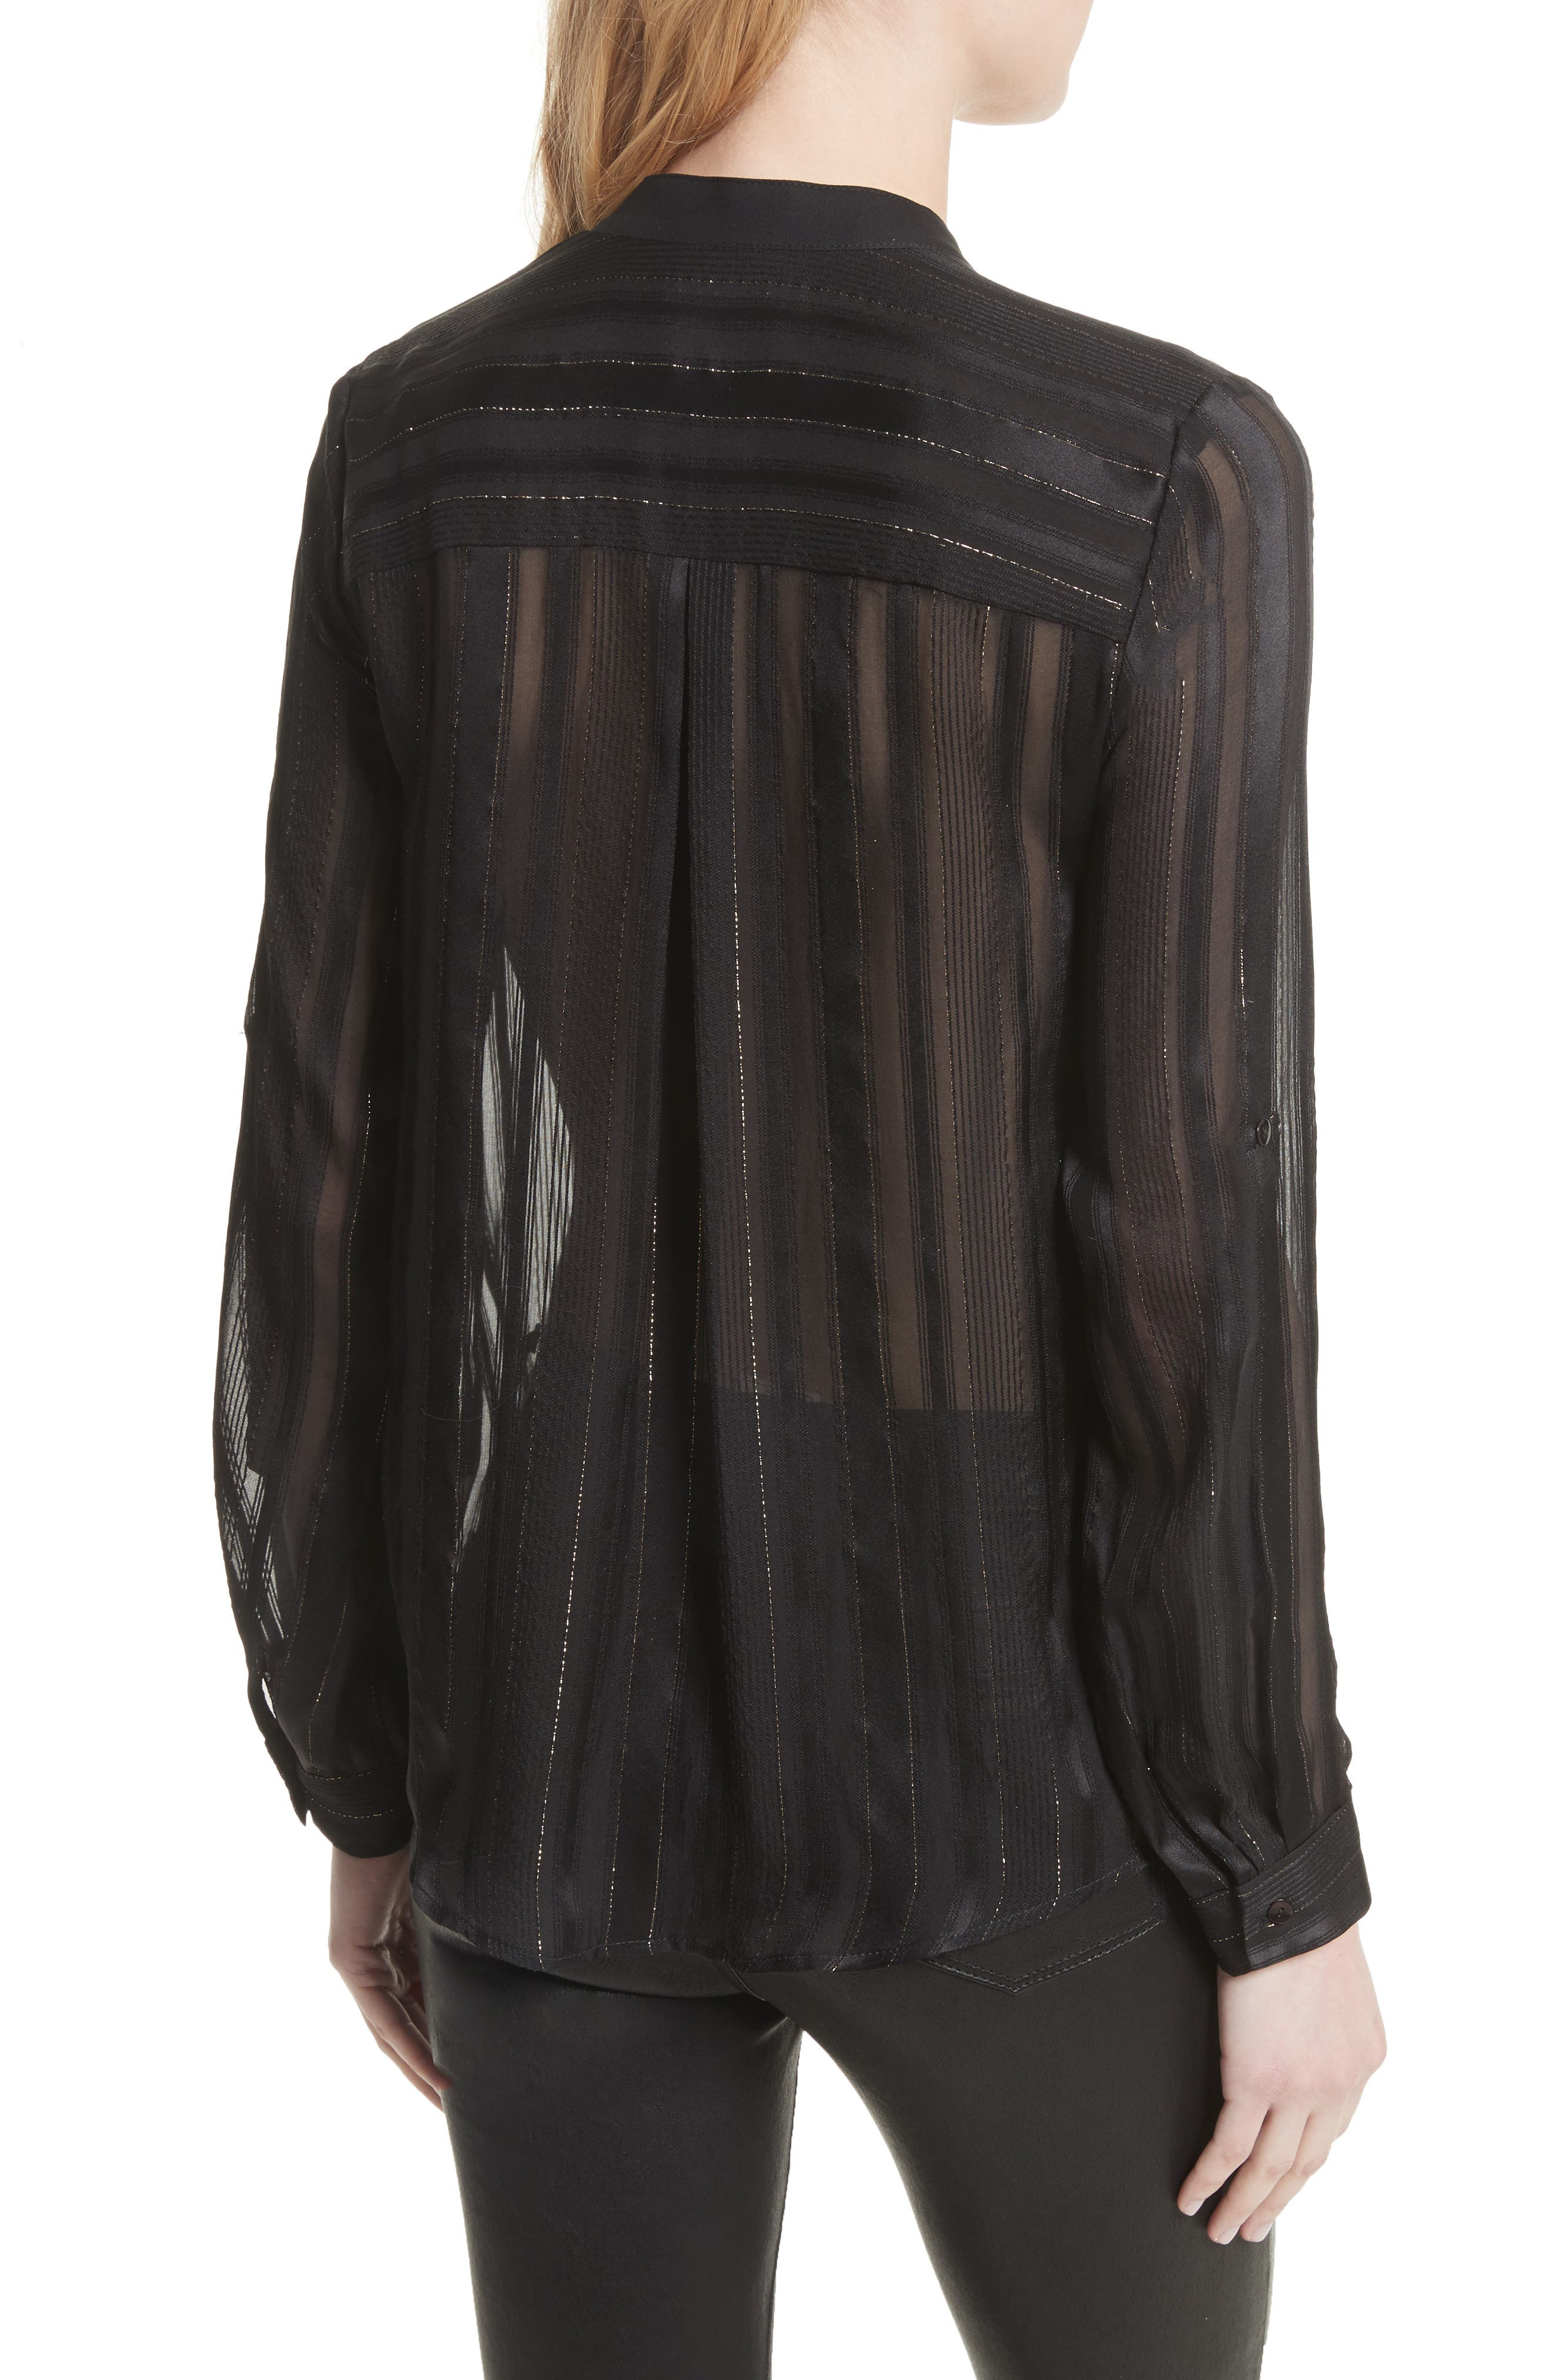 Nadja Tassel Blouse,                             Alternate thumbnail 2, color,                             Black/ Gold